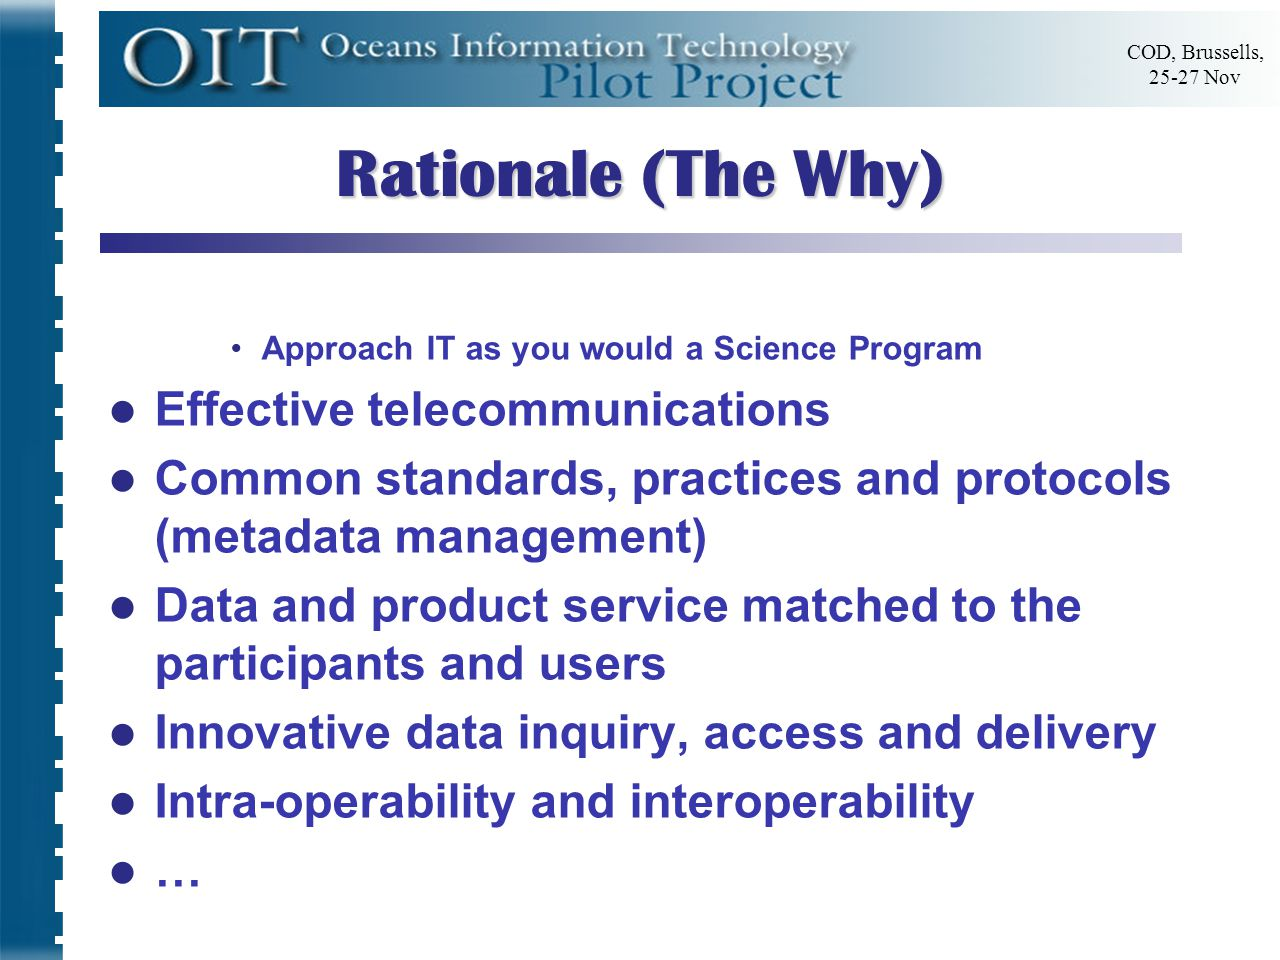 COD, Brussells, 25-27 Nov Rationale (The Why) Approach IT as you would a Science Program Effective telecommunications Common standards, practices and protocols (metadata management) Data and product service matched to the participants and users Innovative data inquiry, access and delivery Intra-operability and interoperability …